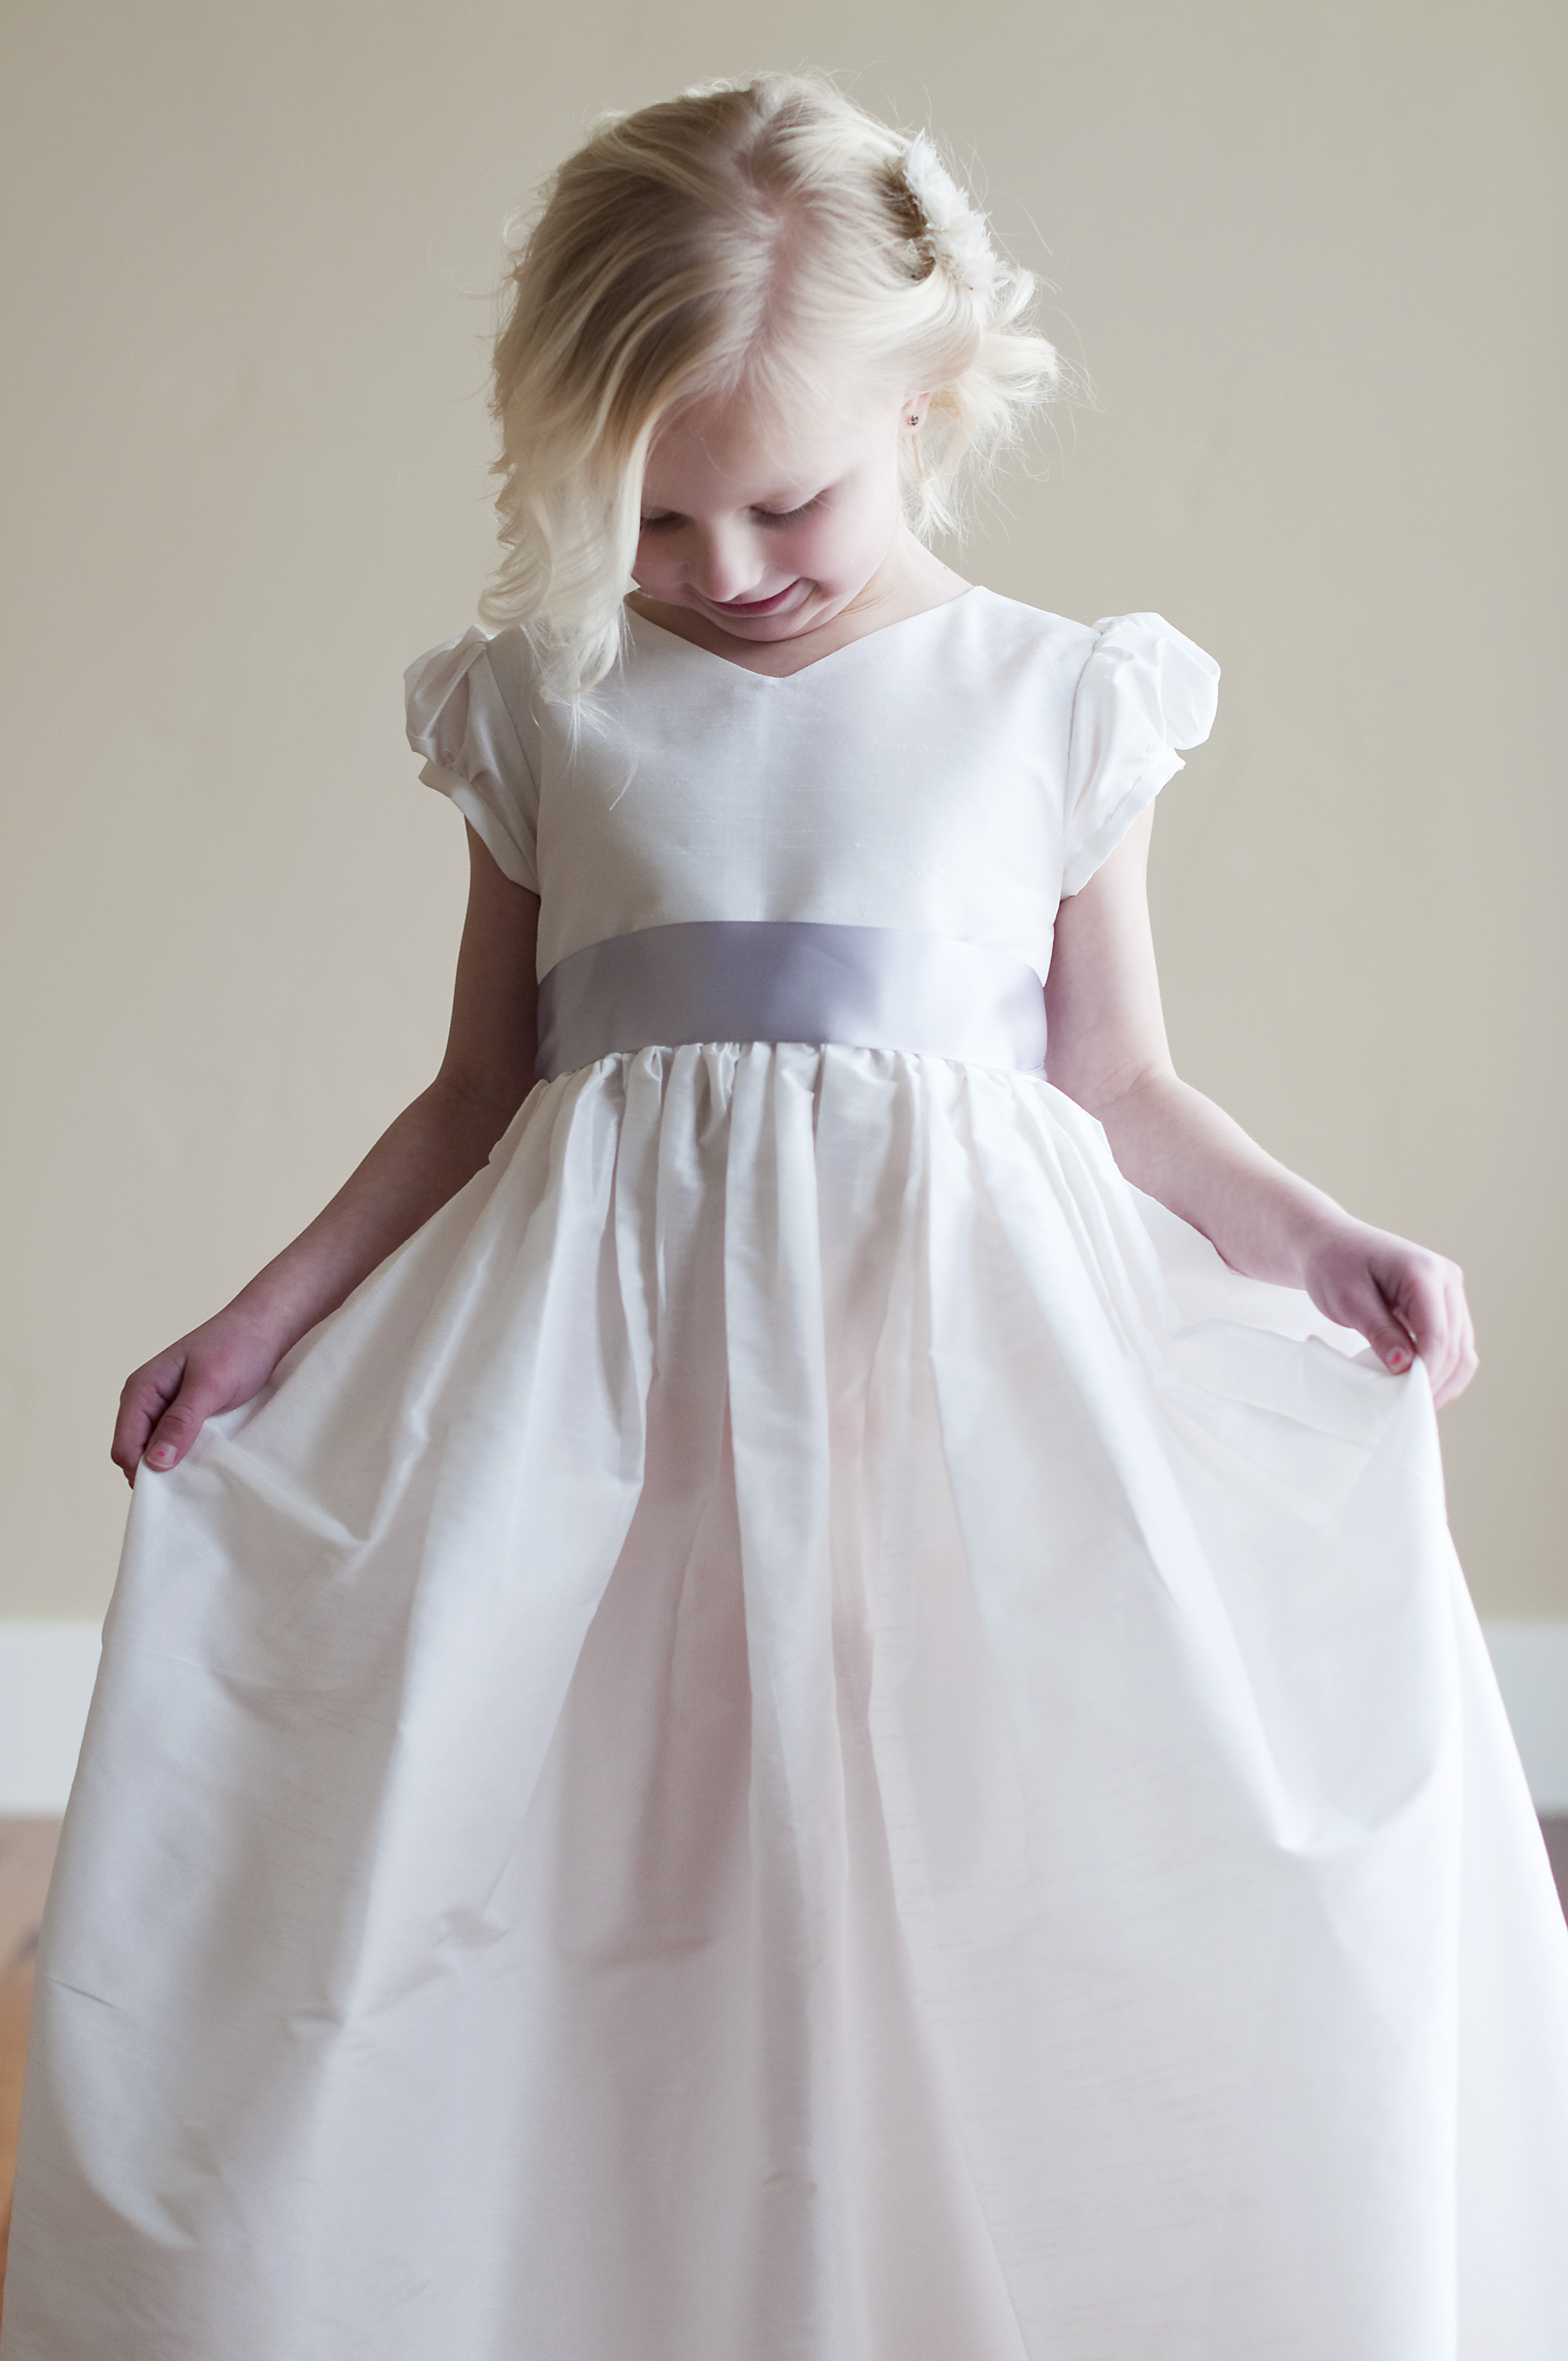 The Albion Dress Is A Clic White Or Ivory Cotton First Communion And Flower With Puff Sleeves V Neckline Sash